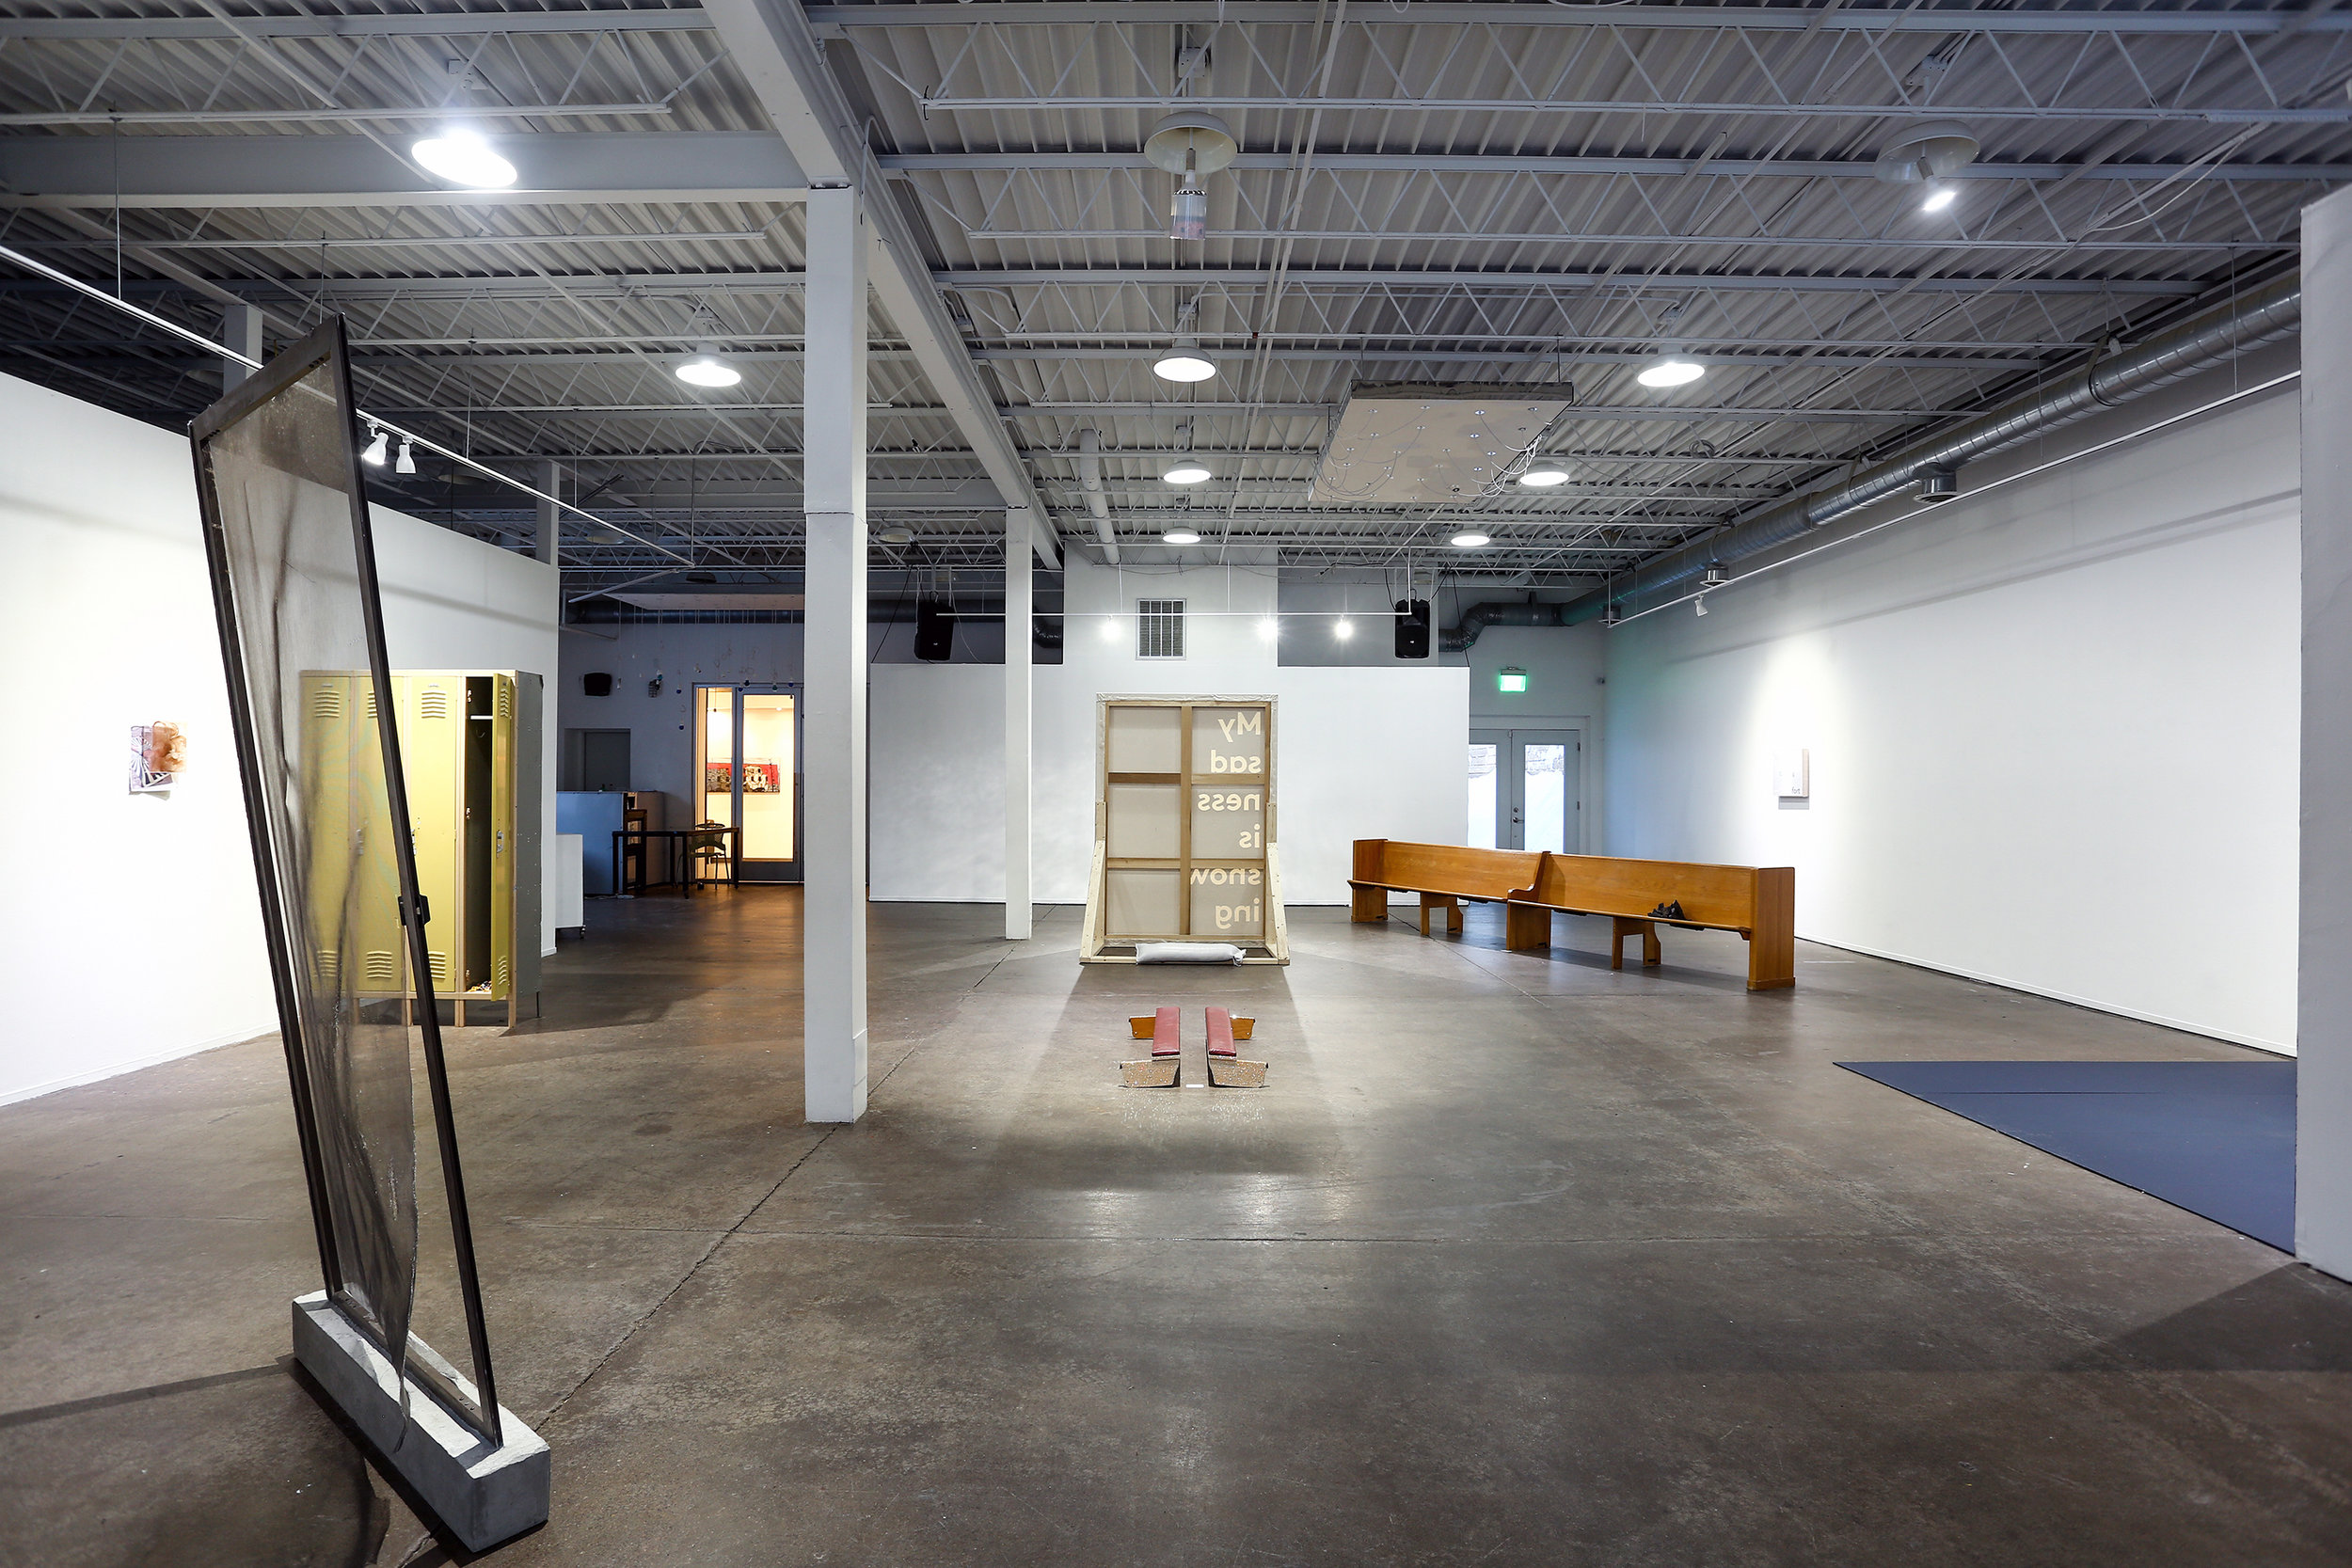 "Documentation from solo show ""of the North"" at  Public Functionary  in Minneapolis, MN. Original show dates Feb 16th - Mar 9th, 2019. This show was made possible through organizations including the  Minnesota State Arts Board ,  RECLAIM! , the  SCSU's LGBT Resource Center , and ""Safe in Virginia, MN"" community group.  Jacob Aaron Schroeder is a fiscal year 2018 recipient of an Artist Initiative grant from the Minnesota State Arts Board. This activity is made possible by the voters of Minnesota through a grant from the Minnesota State Arts Board, thanks to a legislative appropriation by the Minnesota State Legislature; and by a grant from the National Endowment for the Arts."